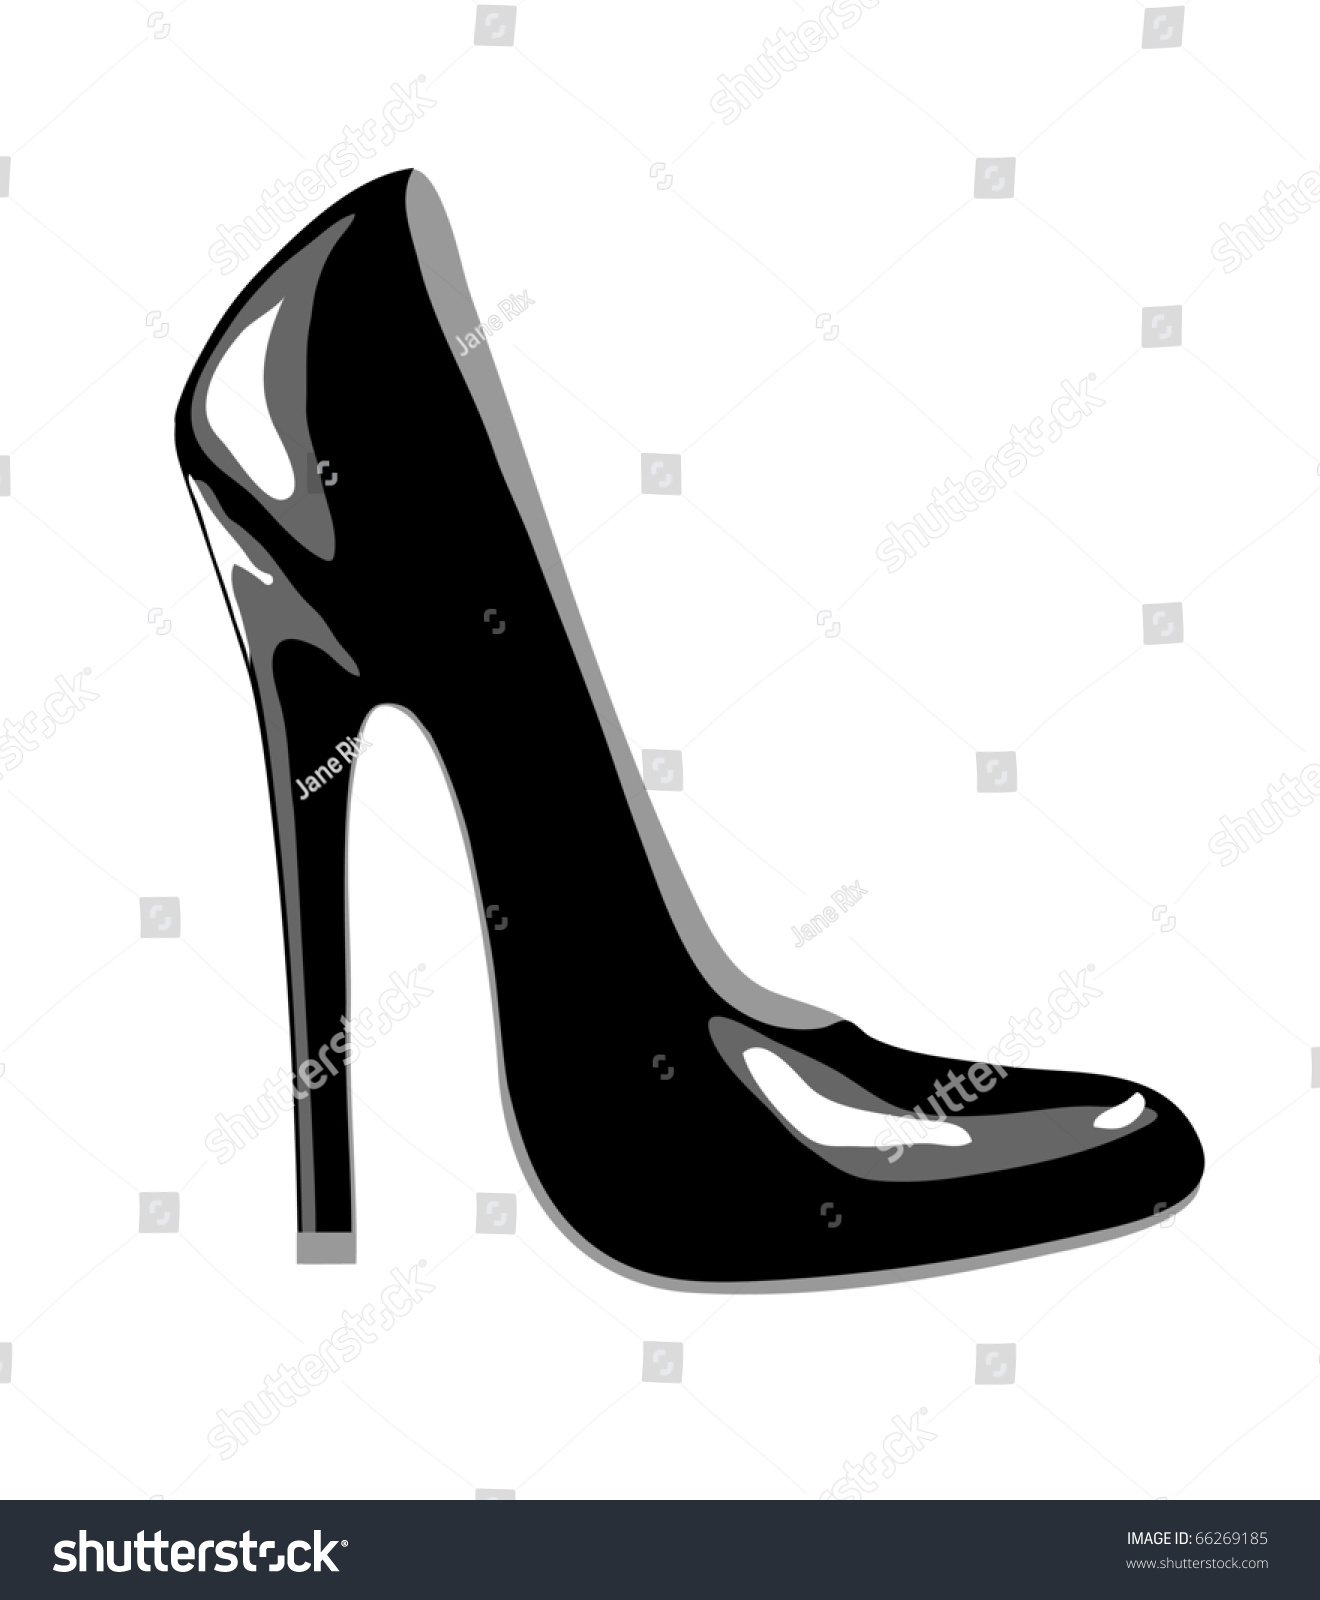 A High-Heeled Black Court Shoe For Business Or Party Wear ...